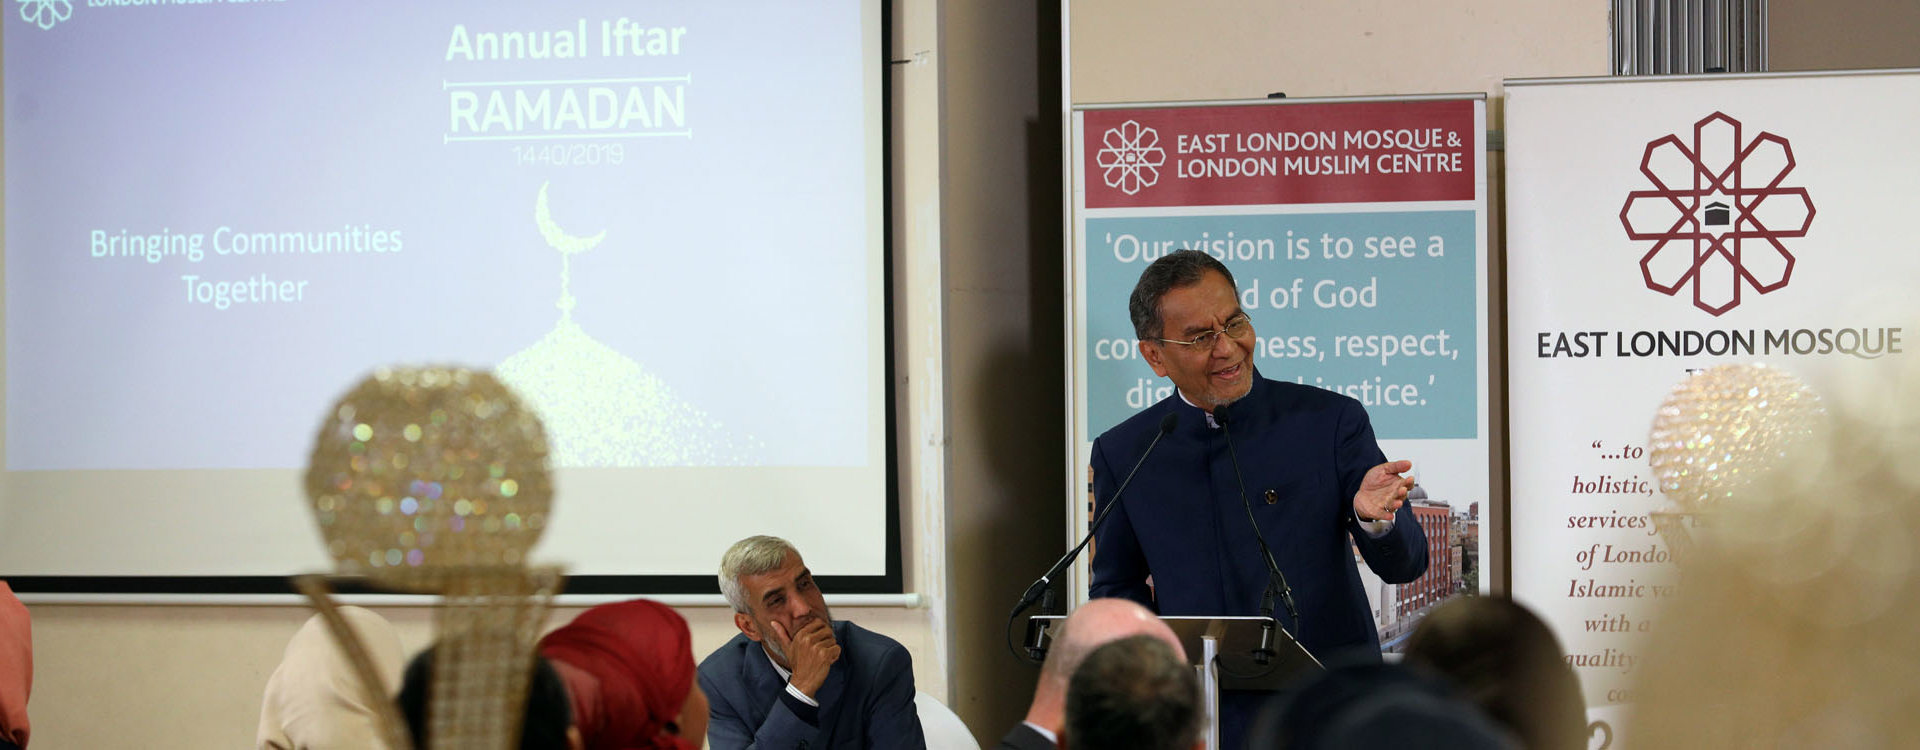 Malaysian Minister of Health special guest at ELM Annual Iftar Dinner